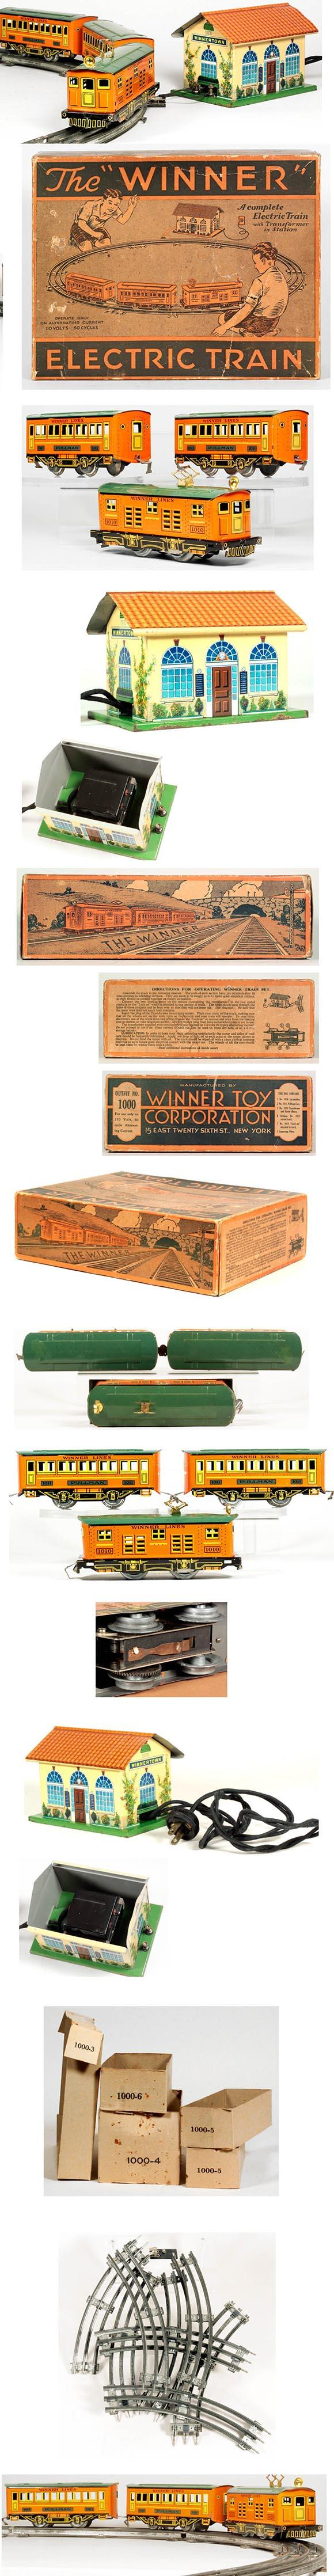 1930 Lionel, Winner Toy Corp. Train Set in Original Box